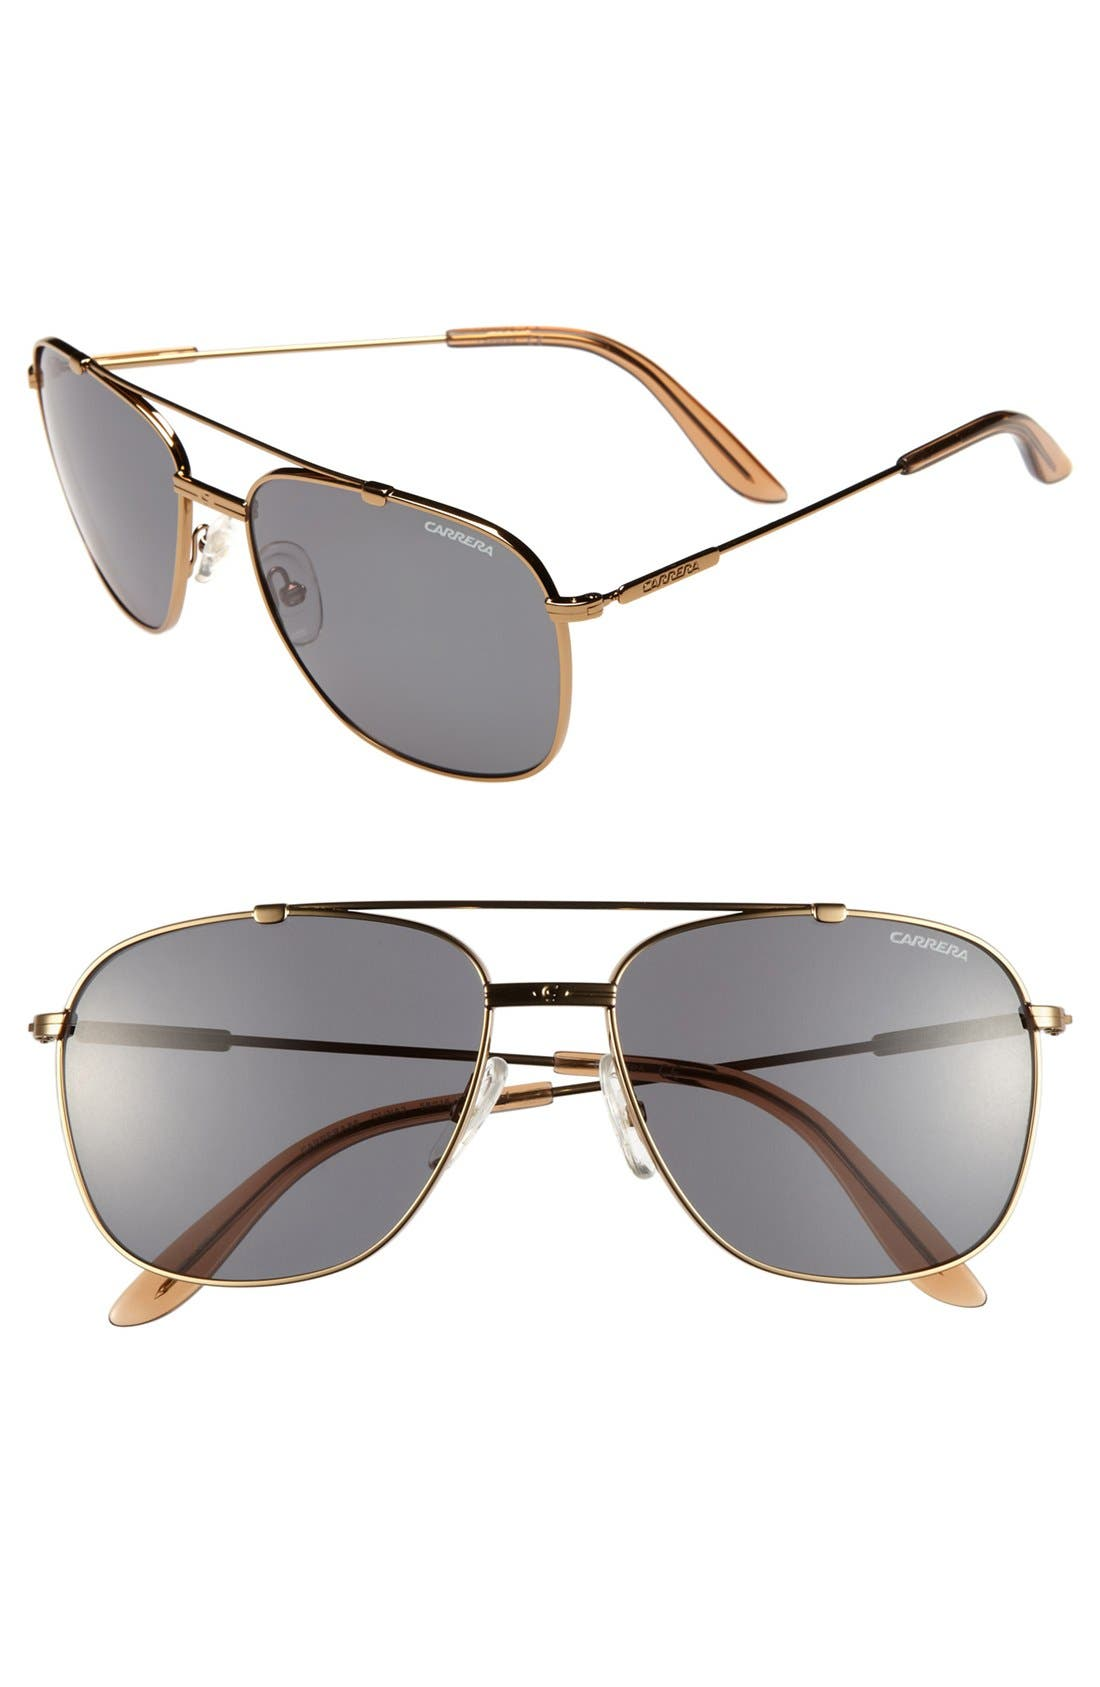 Main Image - Carrera Eyewear 58mm Sunglasses